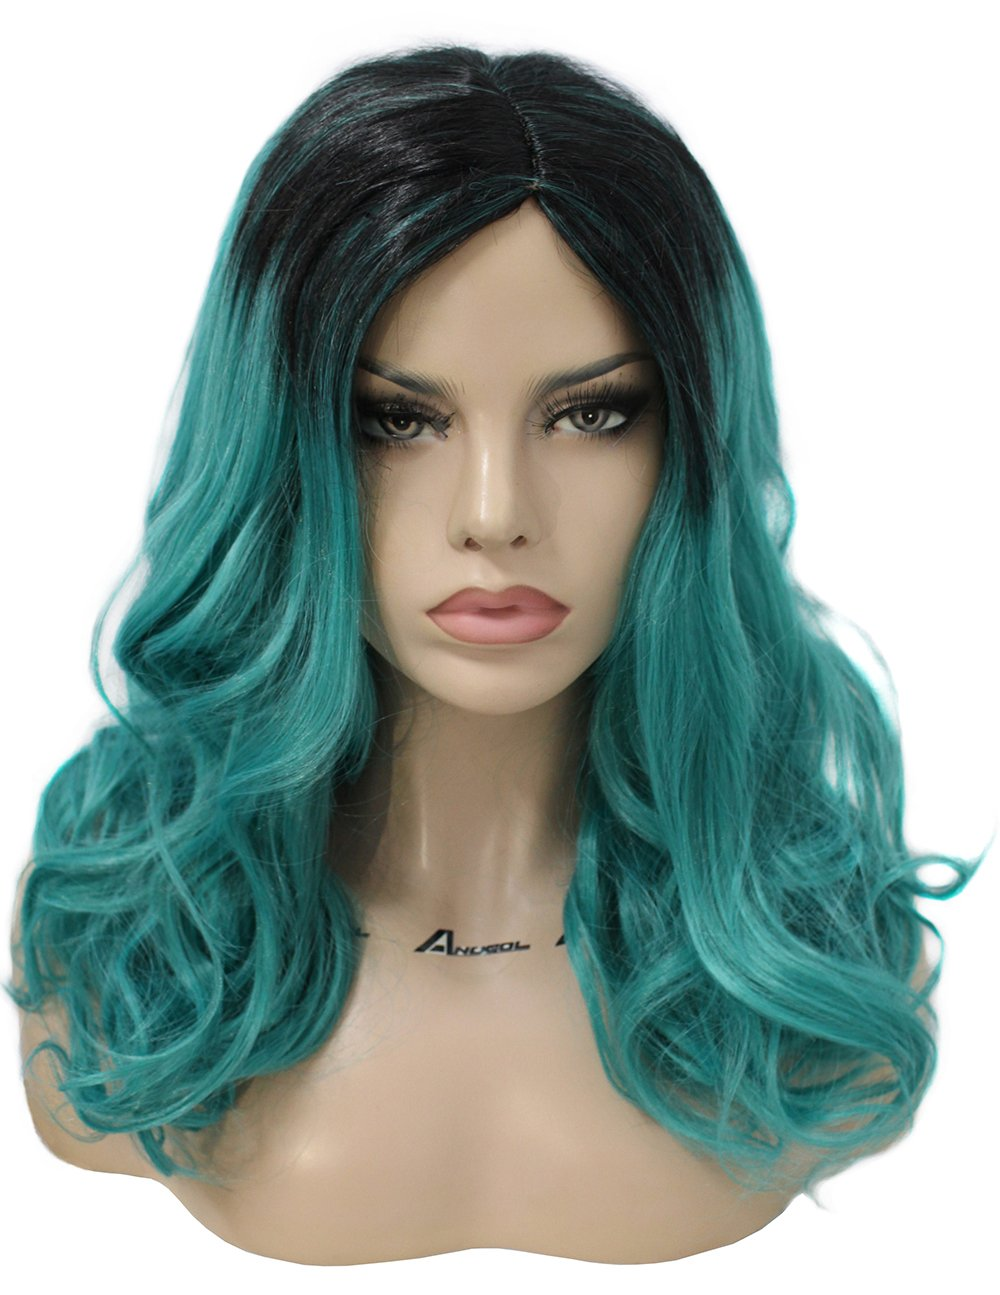 Galleon Anogol Women S Fashion Curly Dark Roots Ombre Green Hair